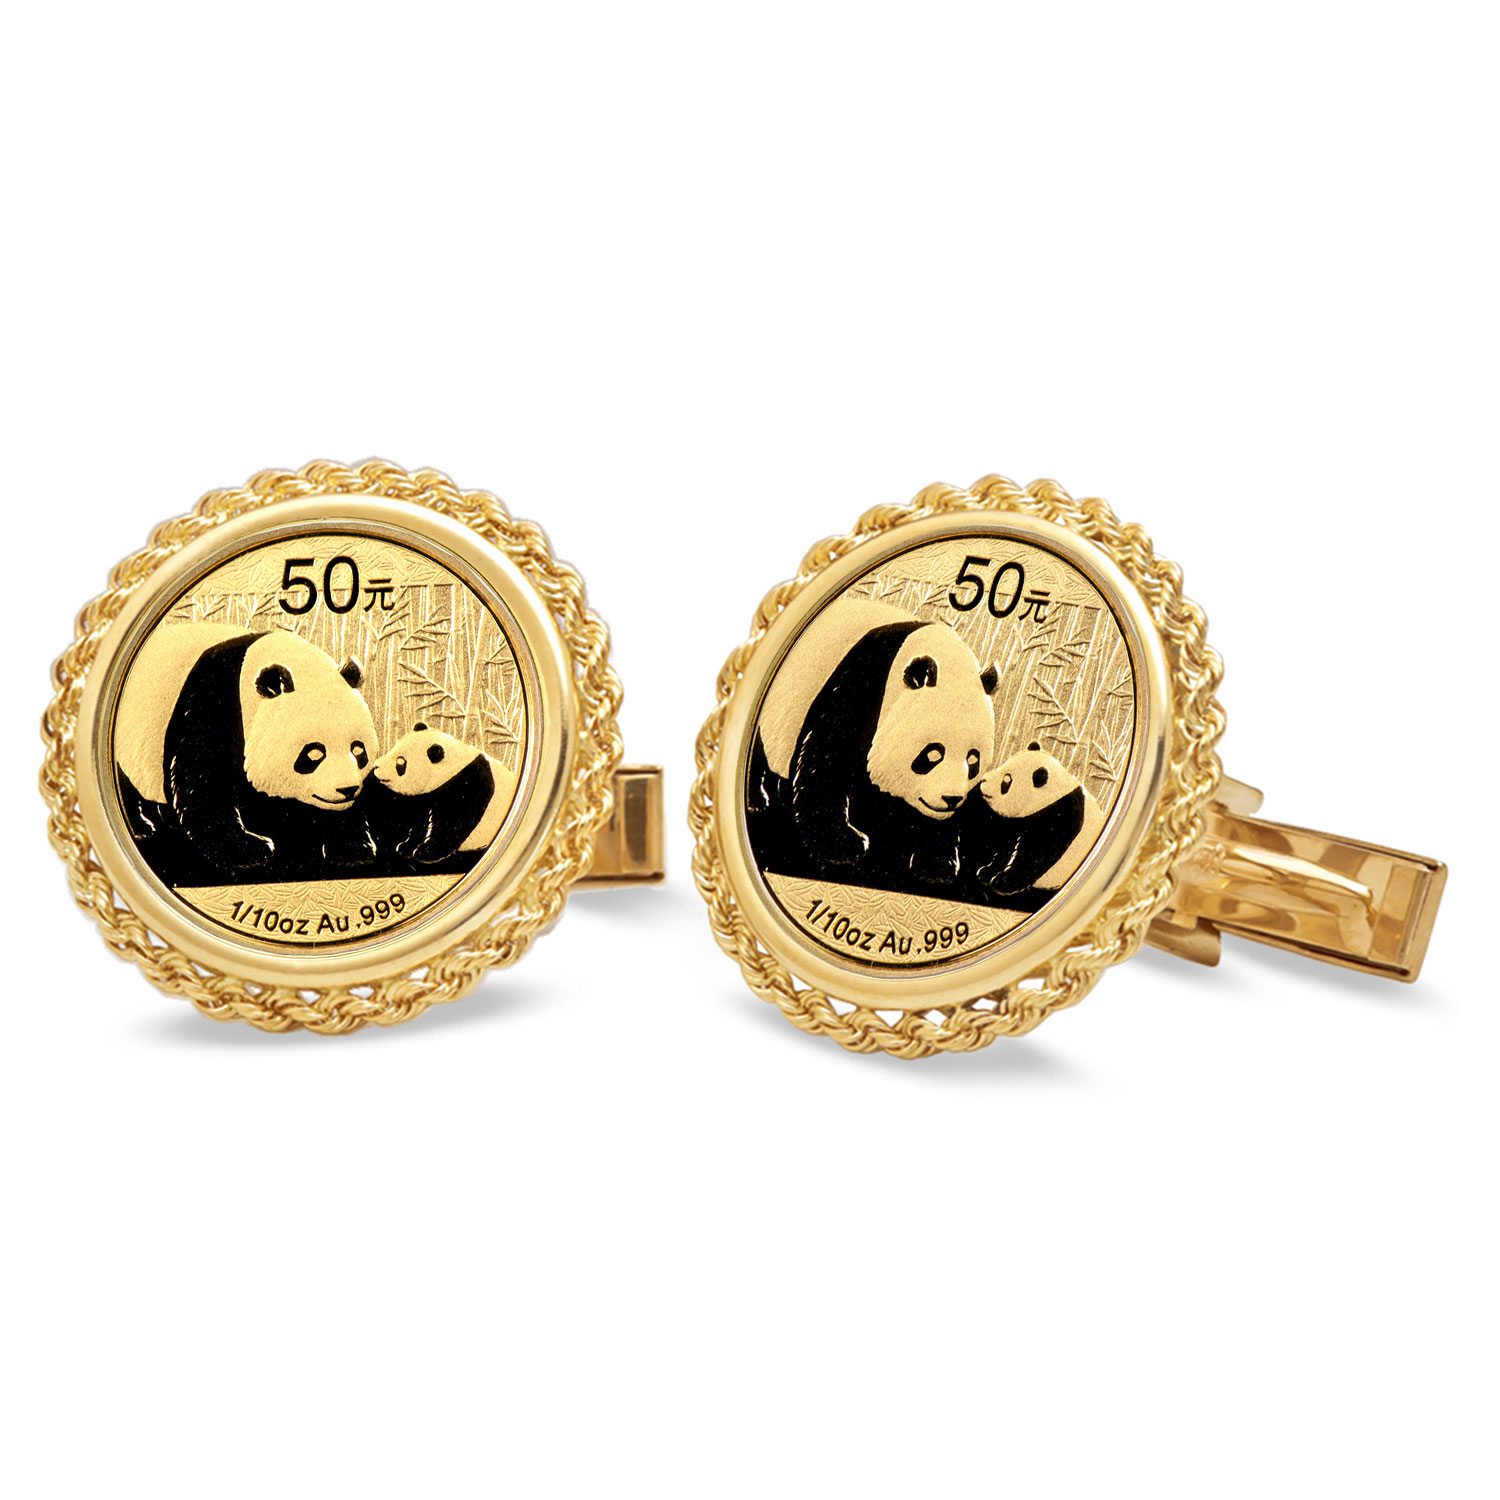 14k Gold Plain Polished Rope Coin Cuff Links - 18 mm